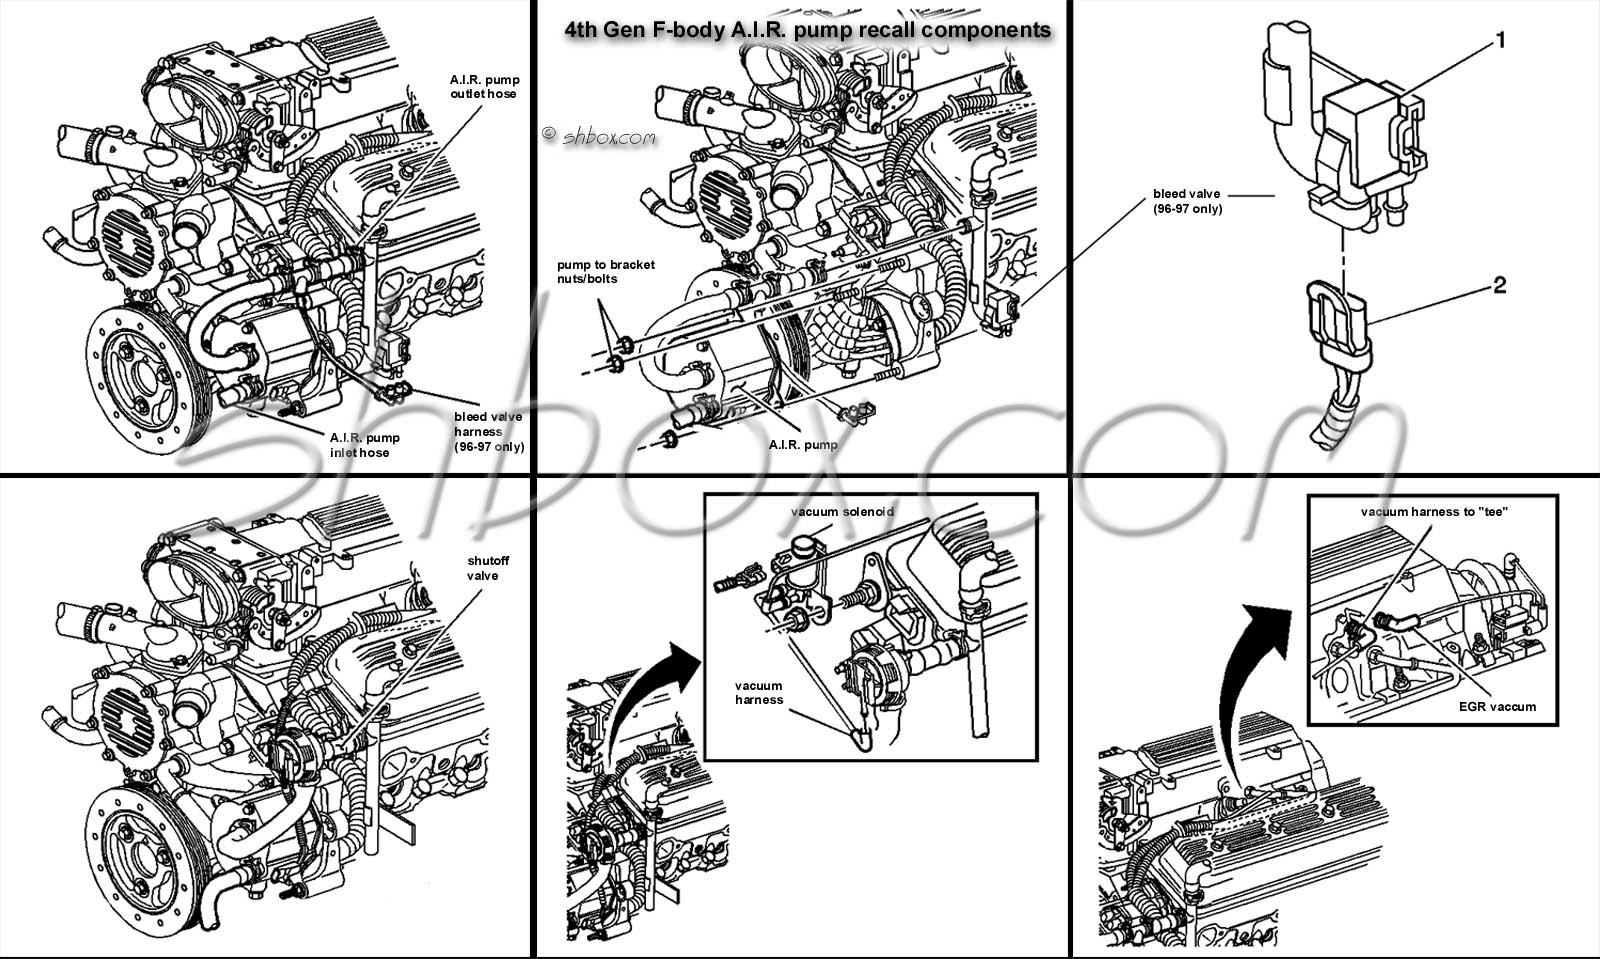 The Generation II LT is a series of eight-cylinder engines manufactured by General Motors. The LT1 version has a displacement of 5.7 liters and was in production from